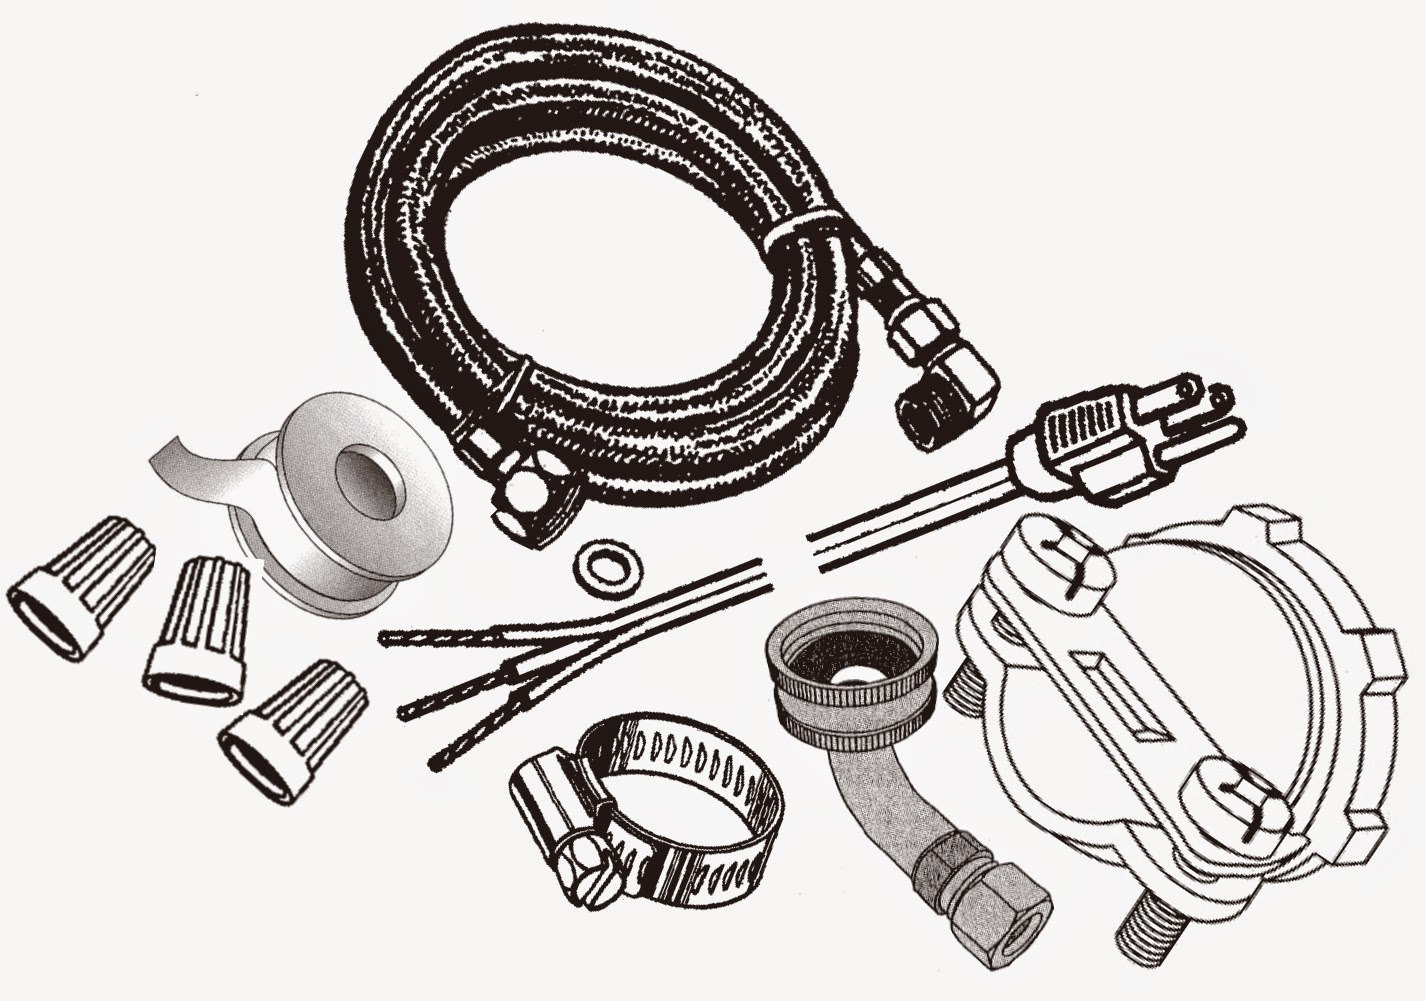 Universal Dishwasher Install Kit DWK-6572DW